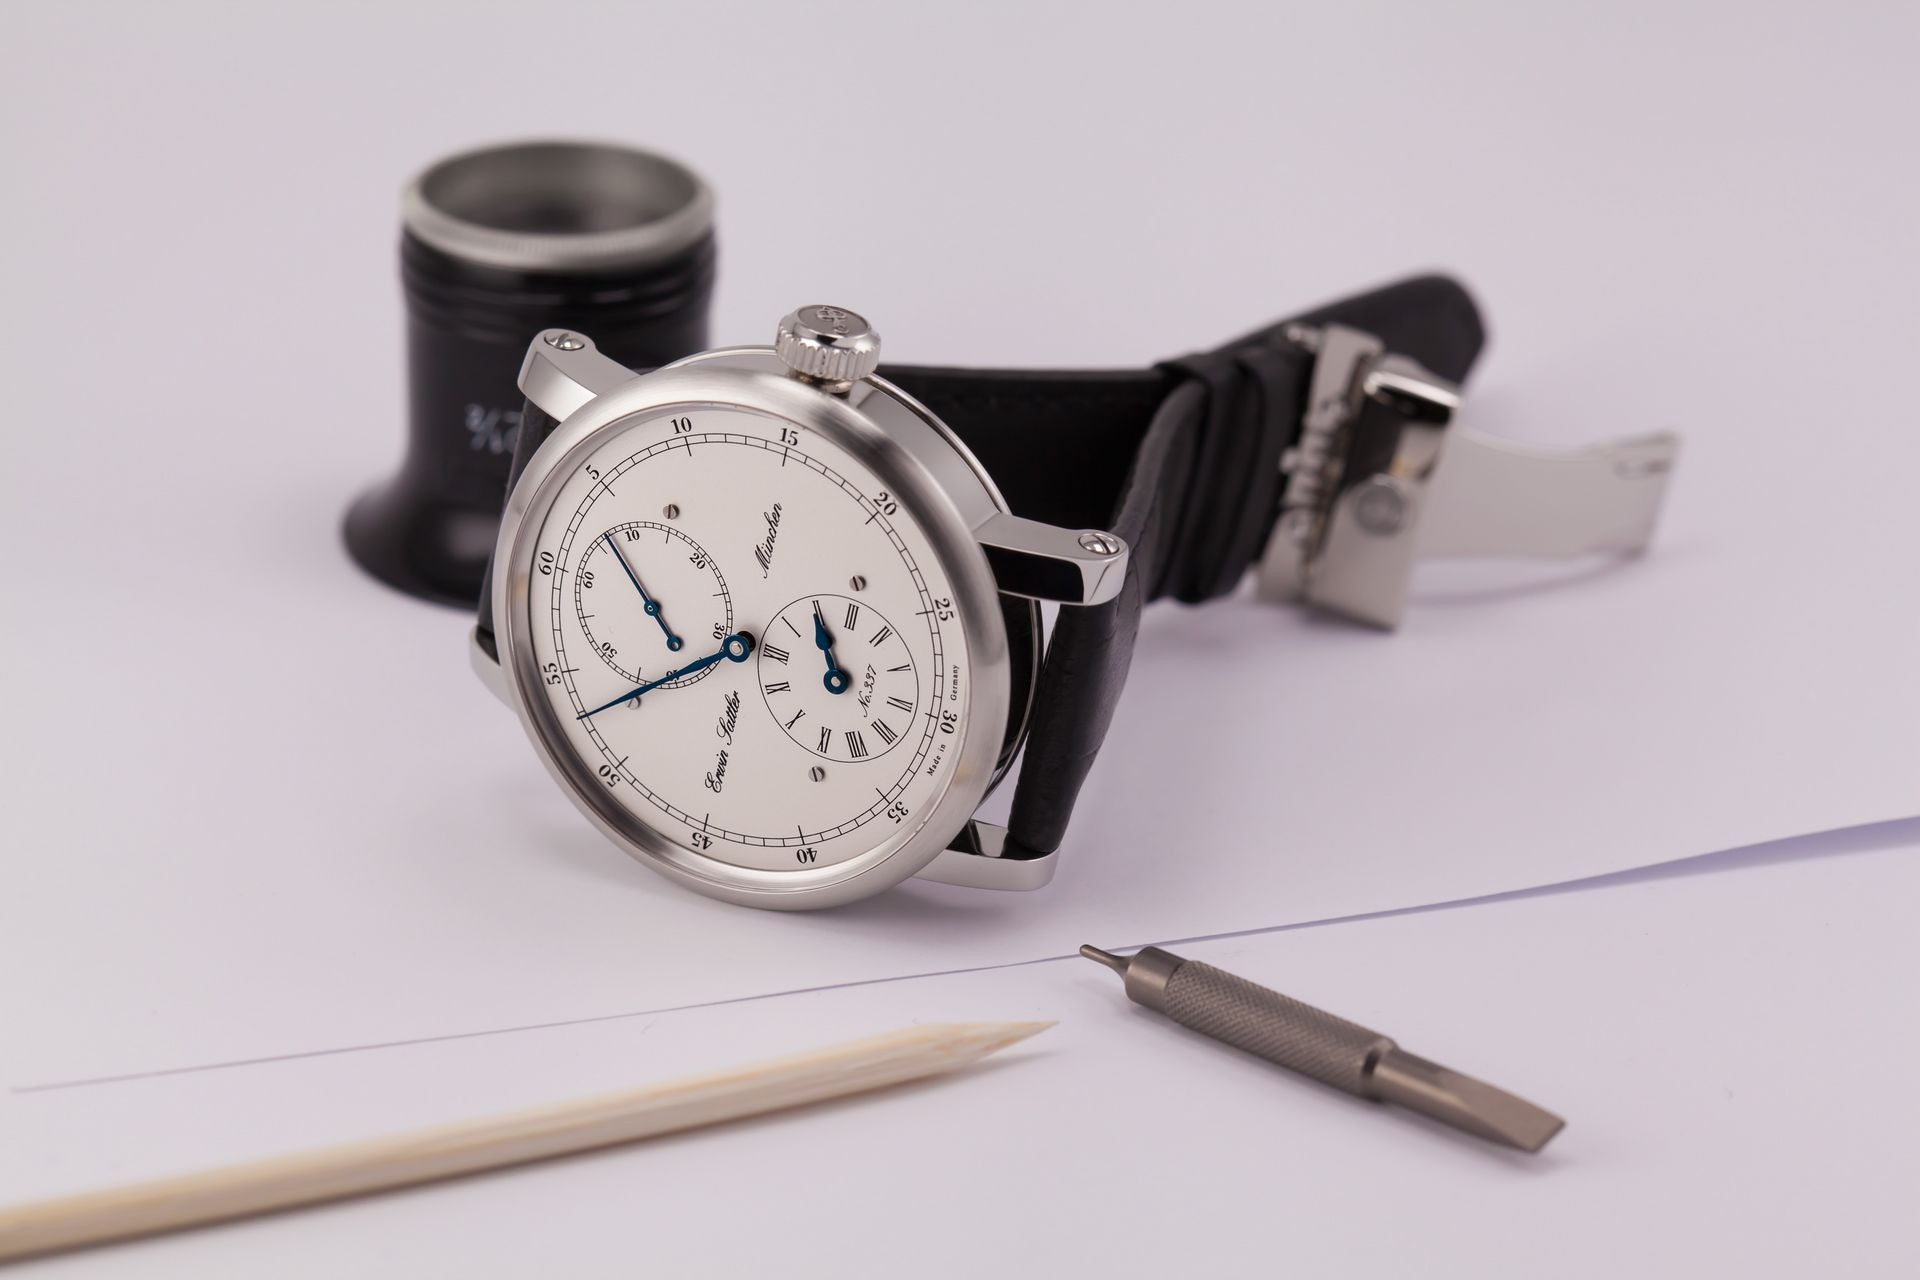 Erwin Sattler Regulateur Classica Secunda Jumping Second Stainless Steel